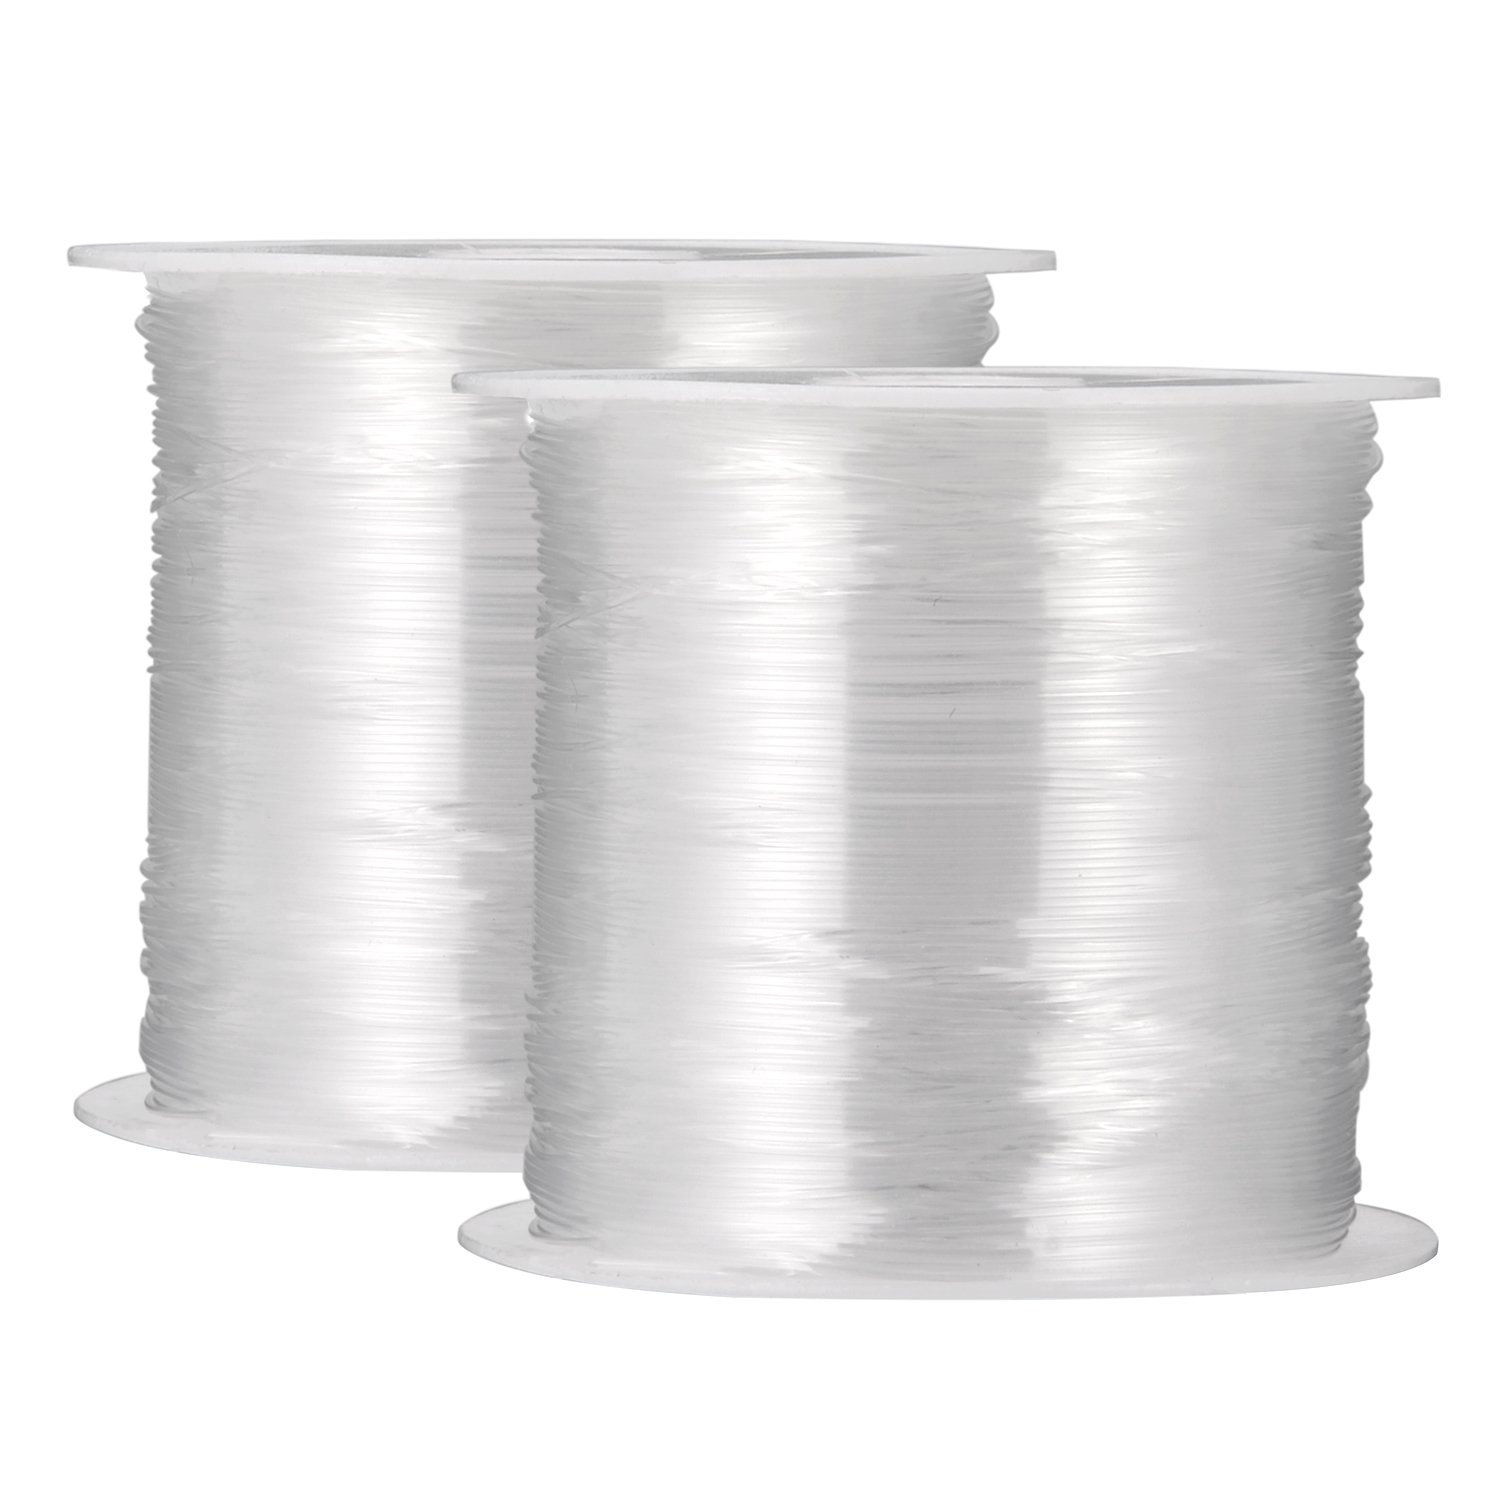 2 Packs 0.4 mm Clear Nylon Wire Non-stretchy Beading Threads for Beading Jewellery Bracelets and Crafts, 45 Meters Each BBTO